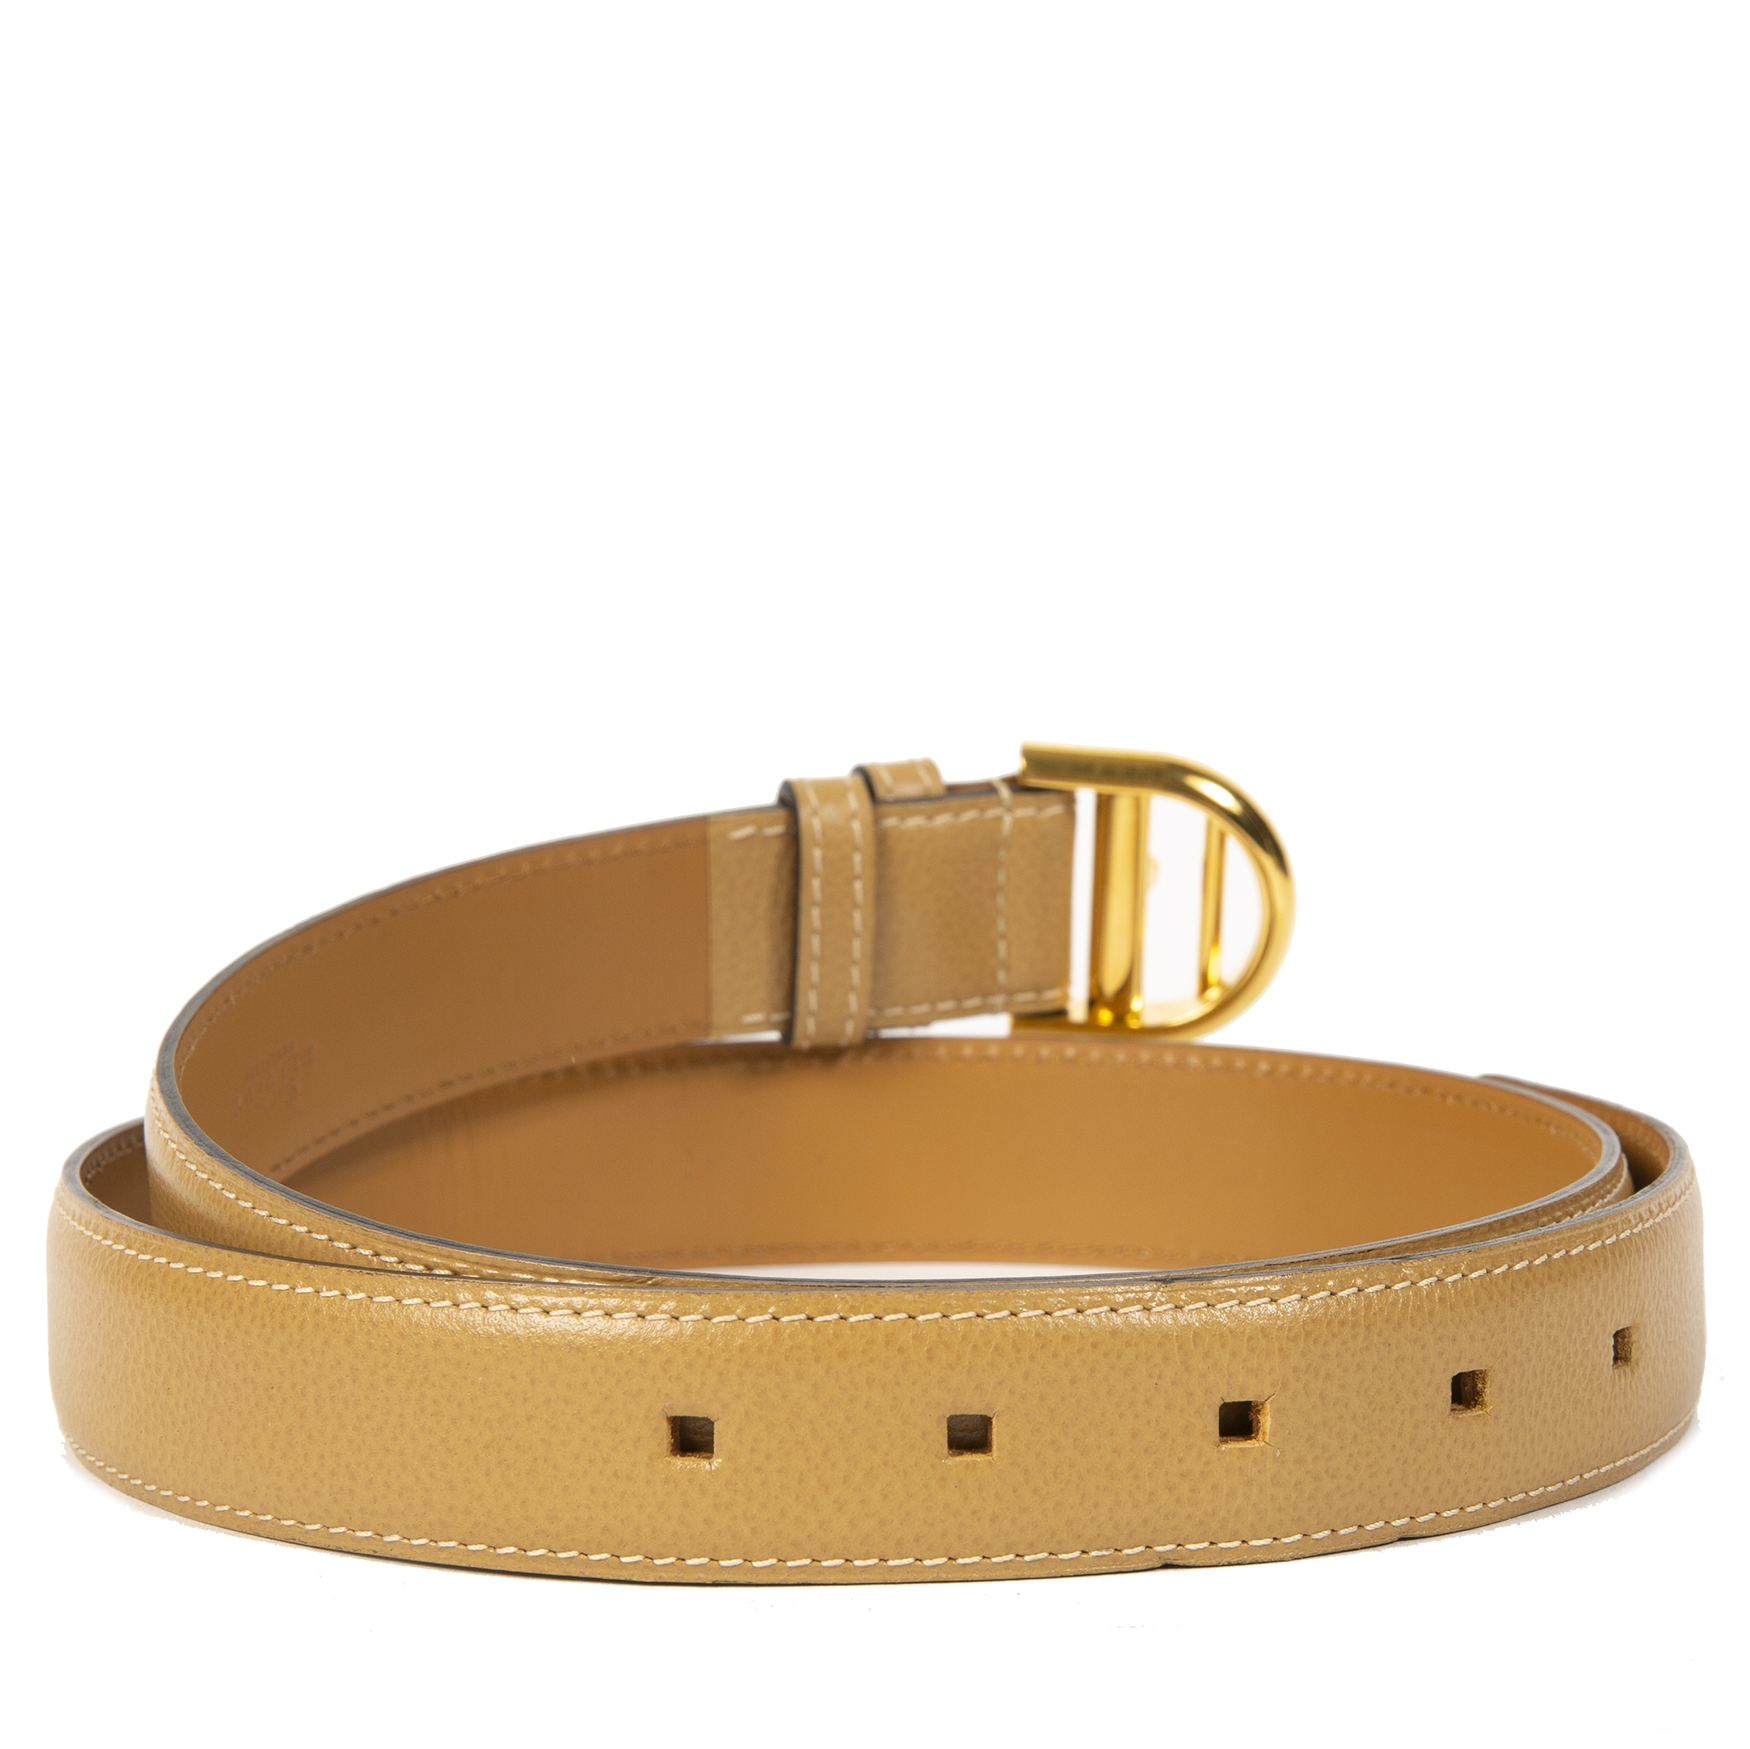 Delvaux Beige Brillant Buckle Belt - size 80